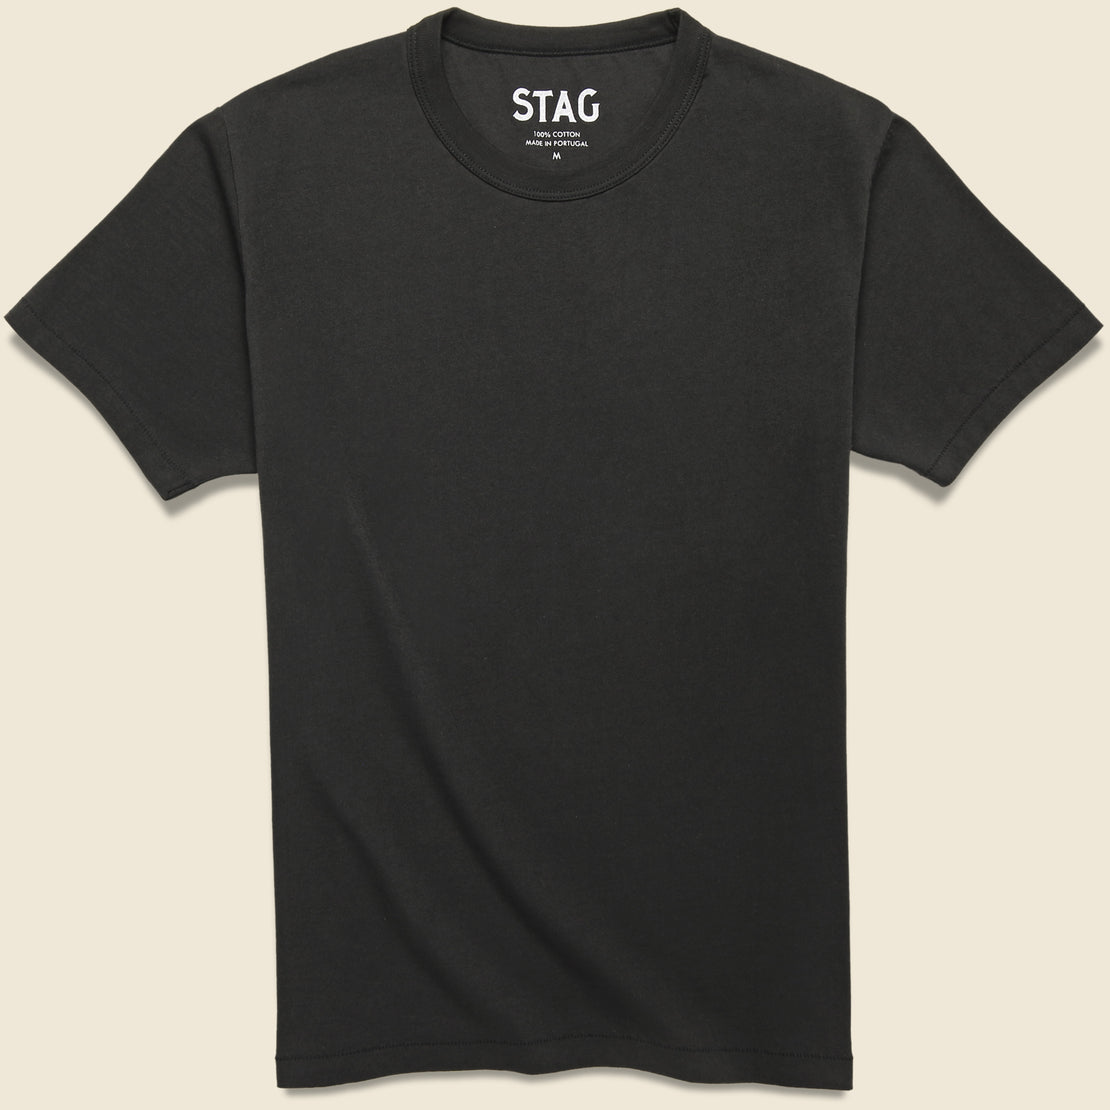 STAG STAG Tee - Black